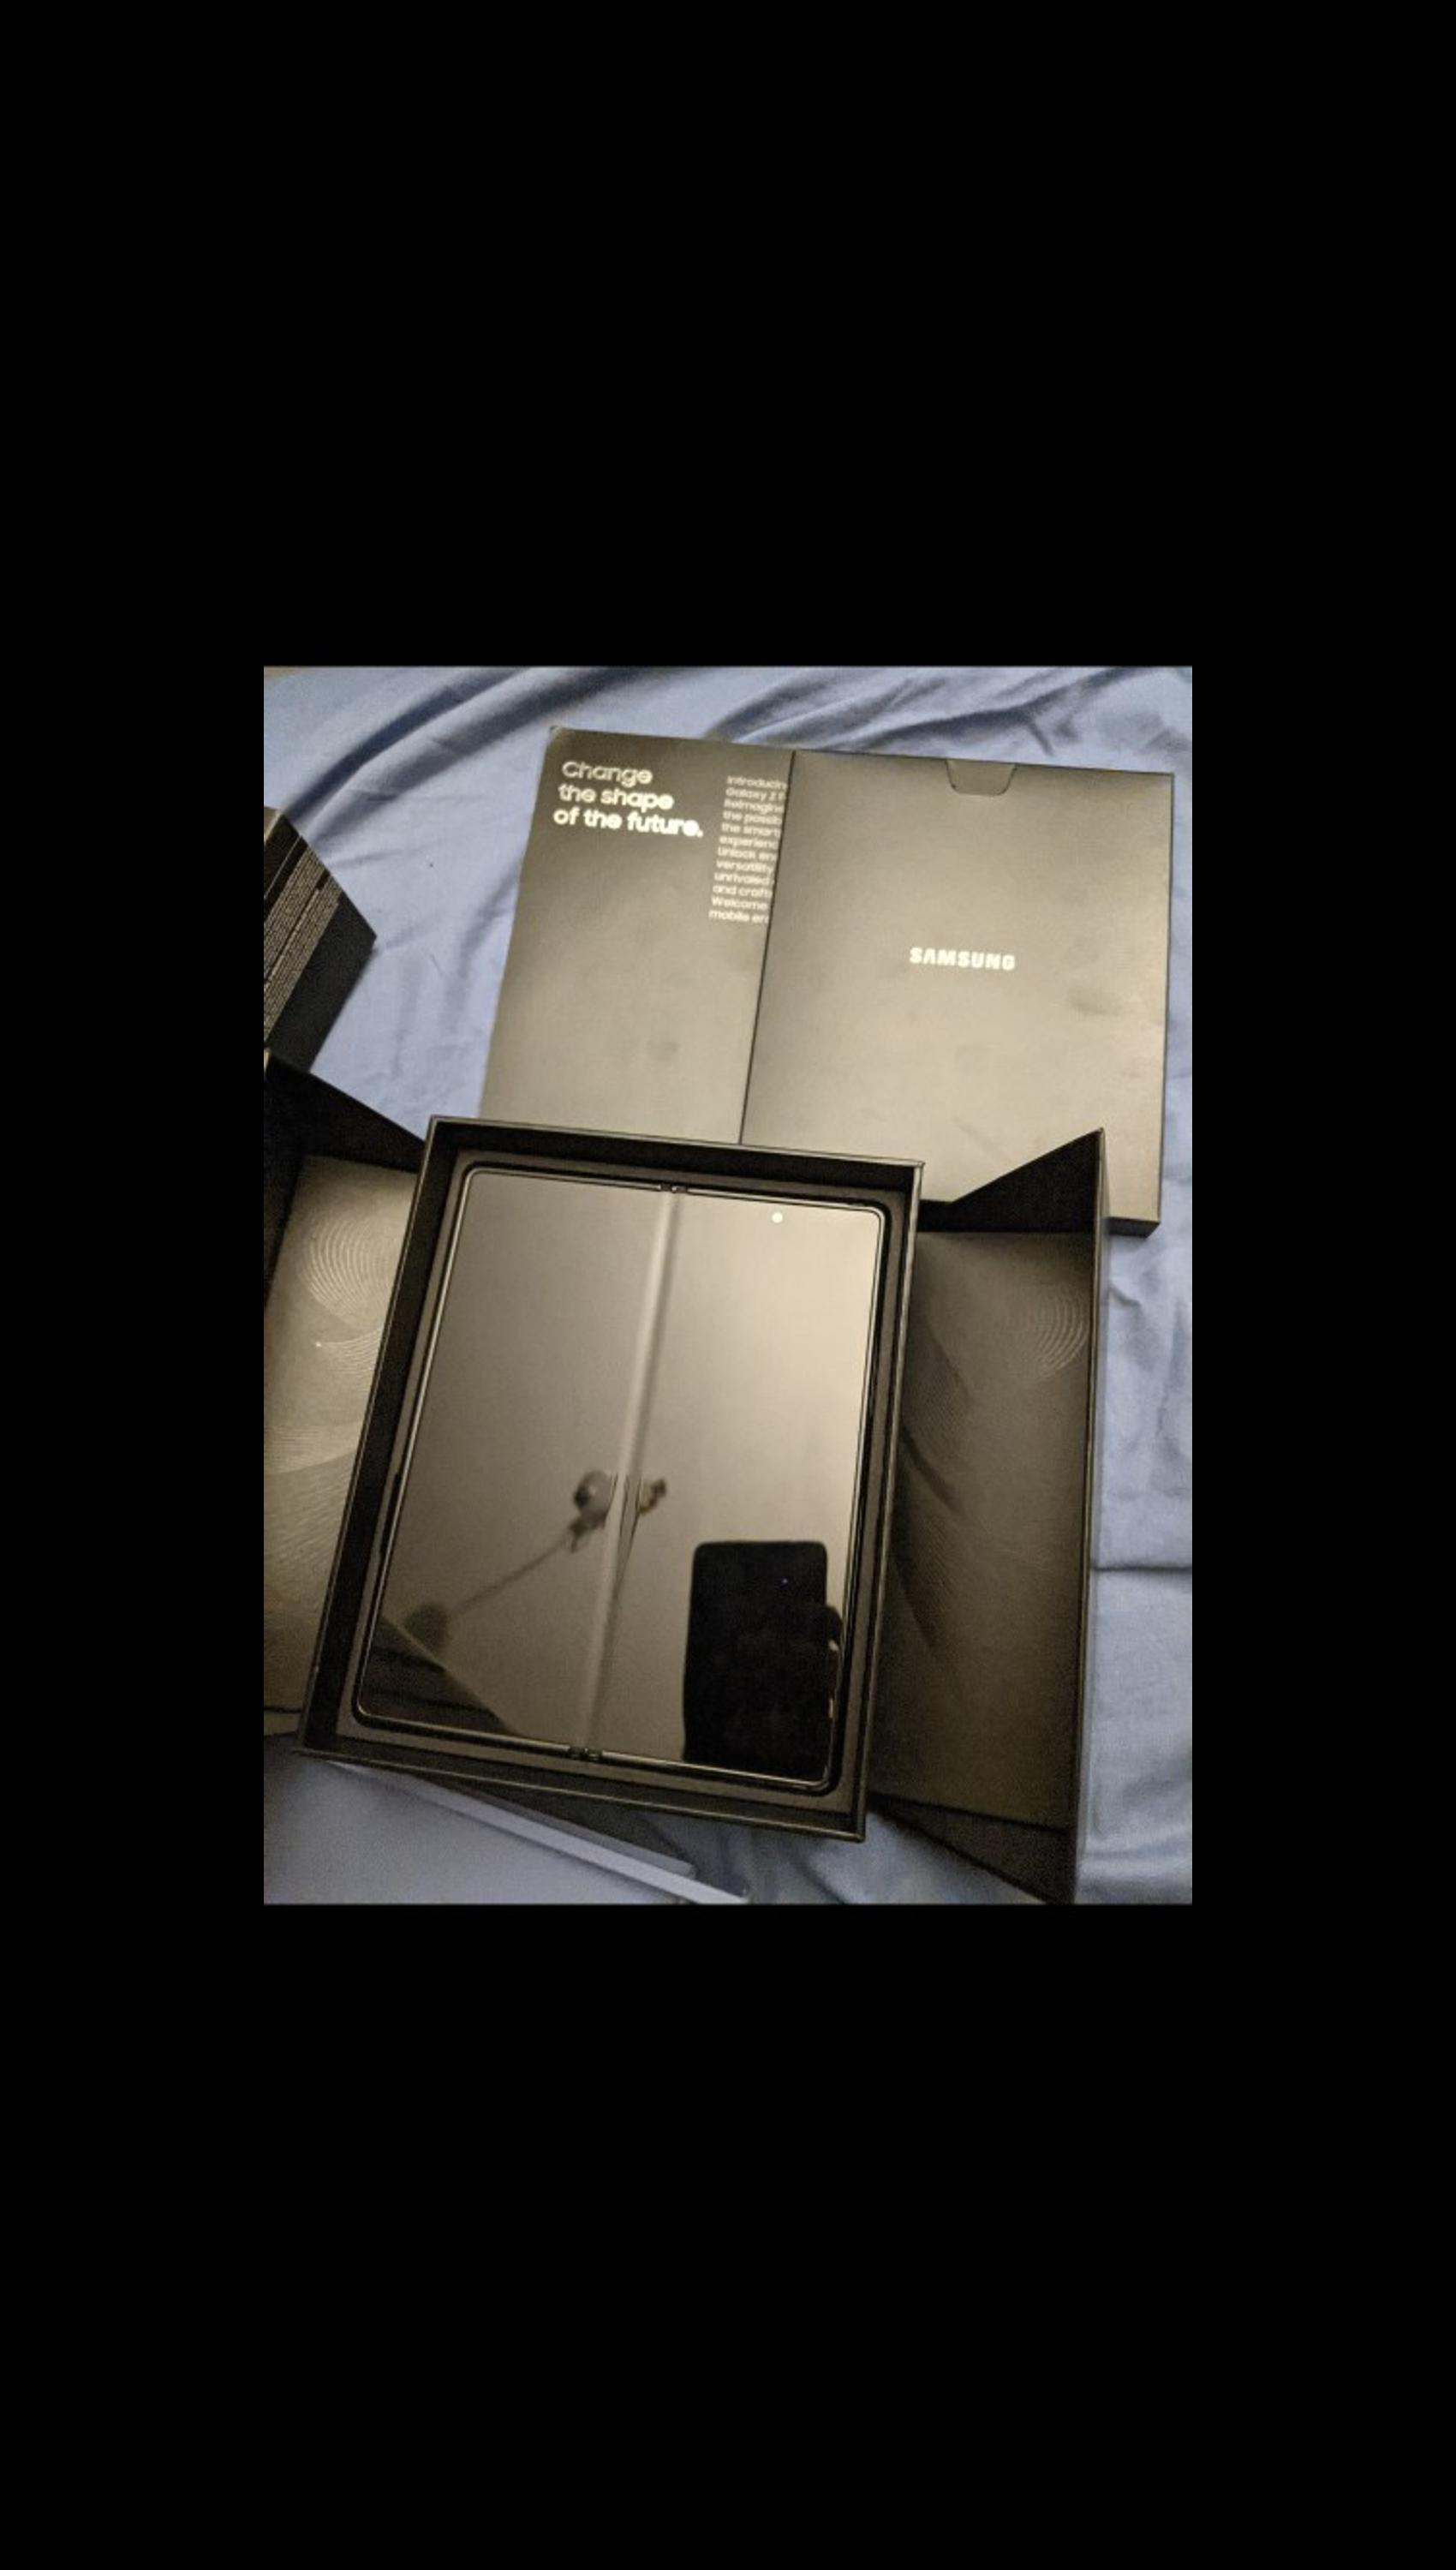 12gb ram 256gb Brand new in box only used 2 months. Payed 1599 for it from Samsung. No marks or scratches unlocked still got factory protectors on brand new. Very powerful device colour black. No postage no PayPal .this isn't a scam, cash on collection. sensible offers nothing stupid. and stop asking if it's available. if the ad is here it's available.